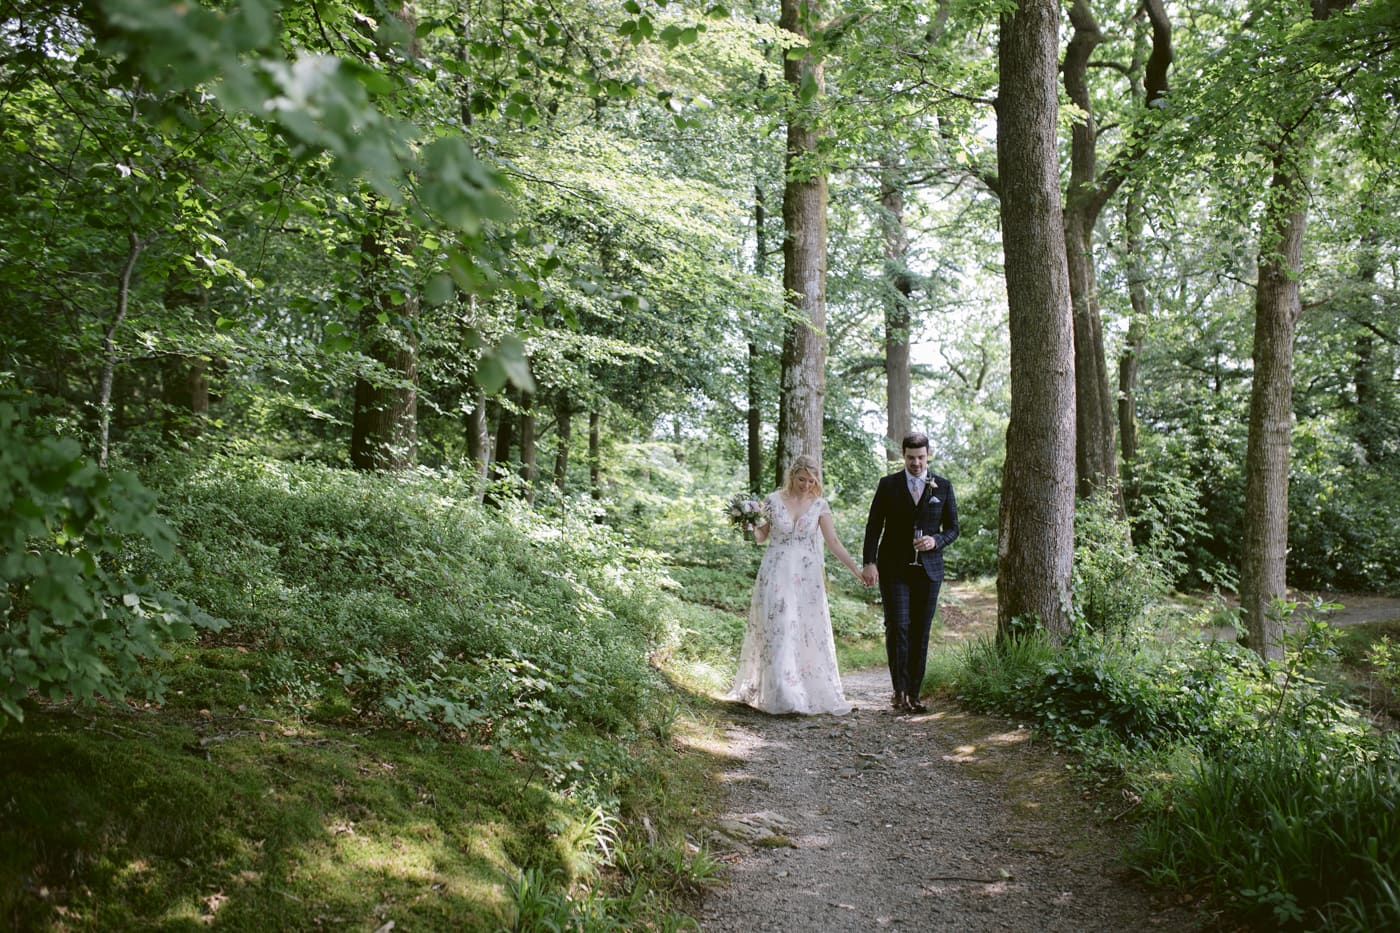 Couple Portrait Shoot in Woodland Path at Storrs Hall Wedding